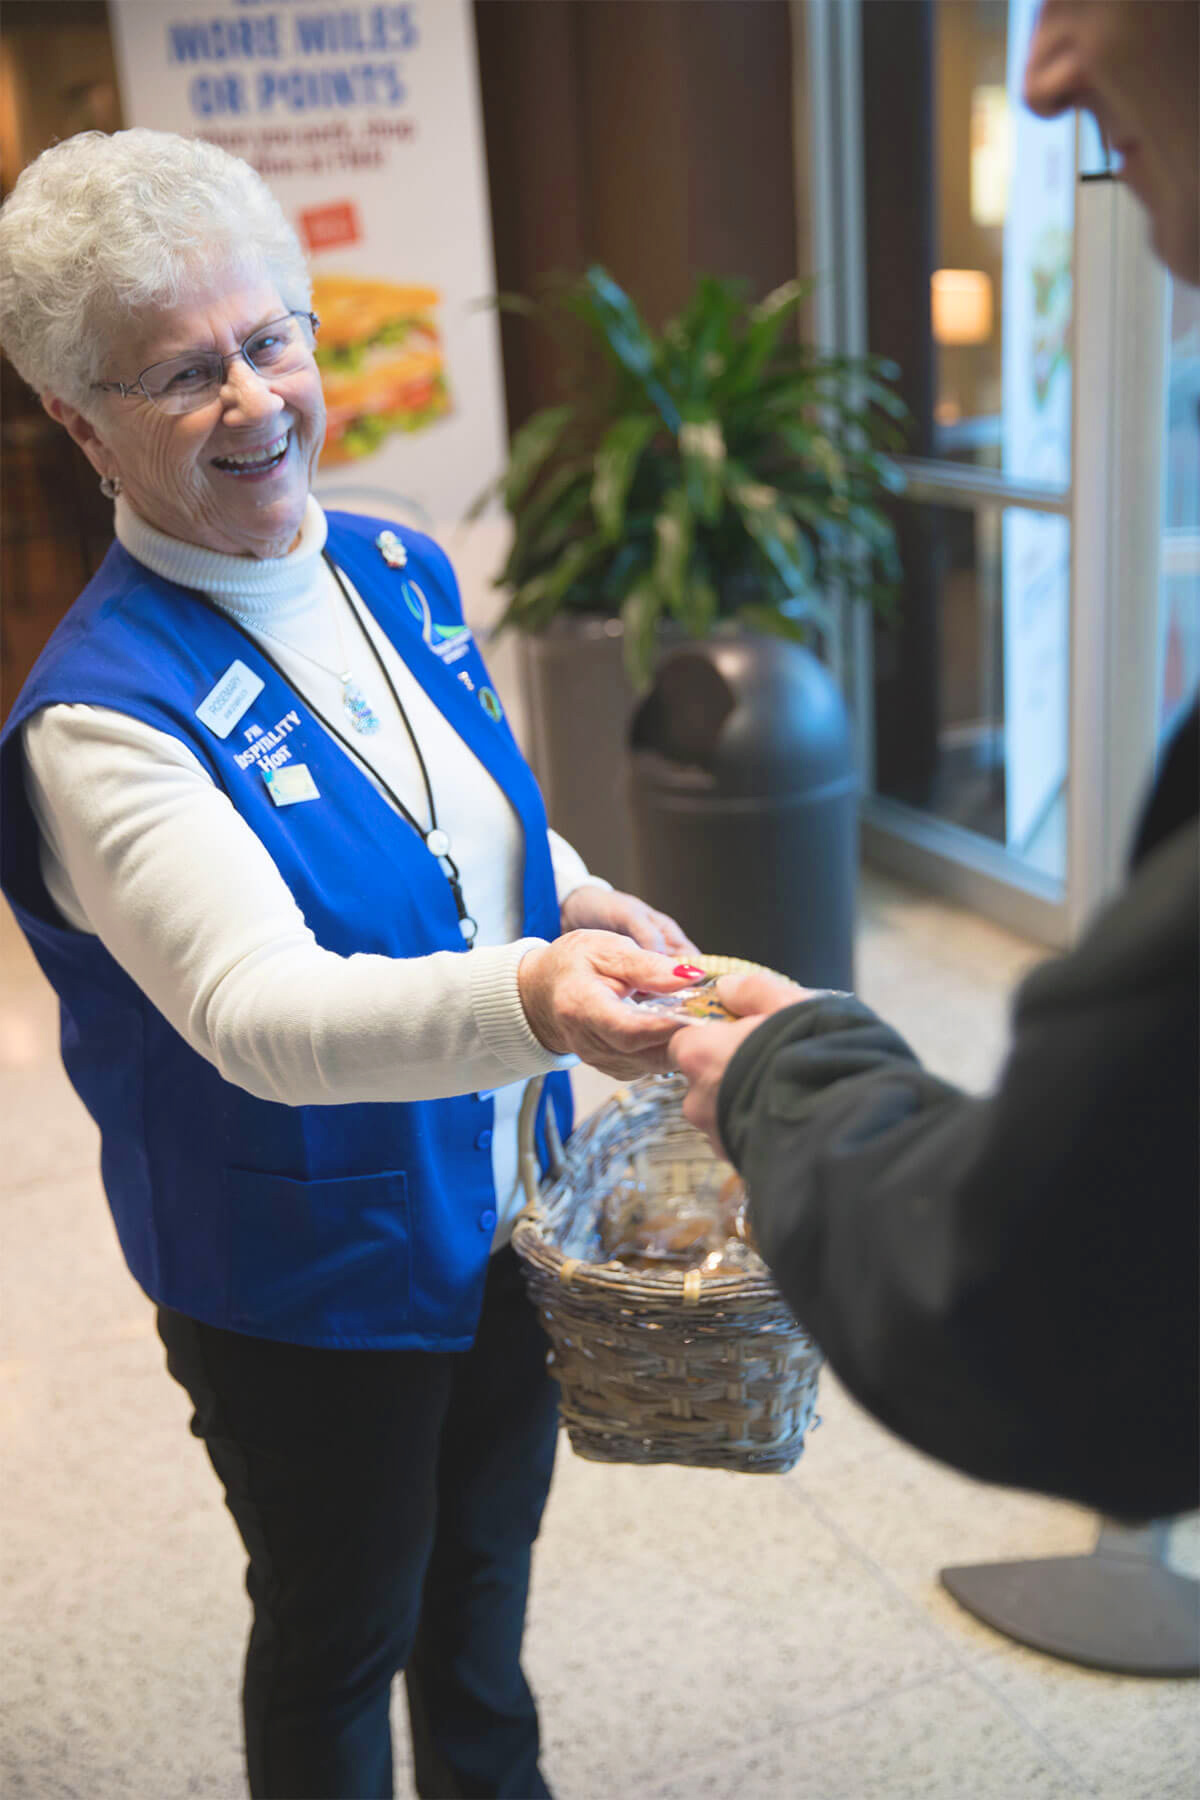 A woman is handing a cookie to the passengers who just landed at the Fort Wayne airport